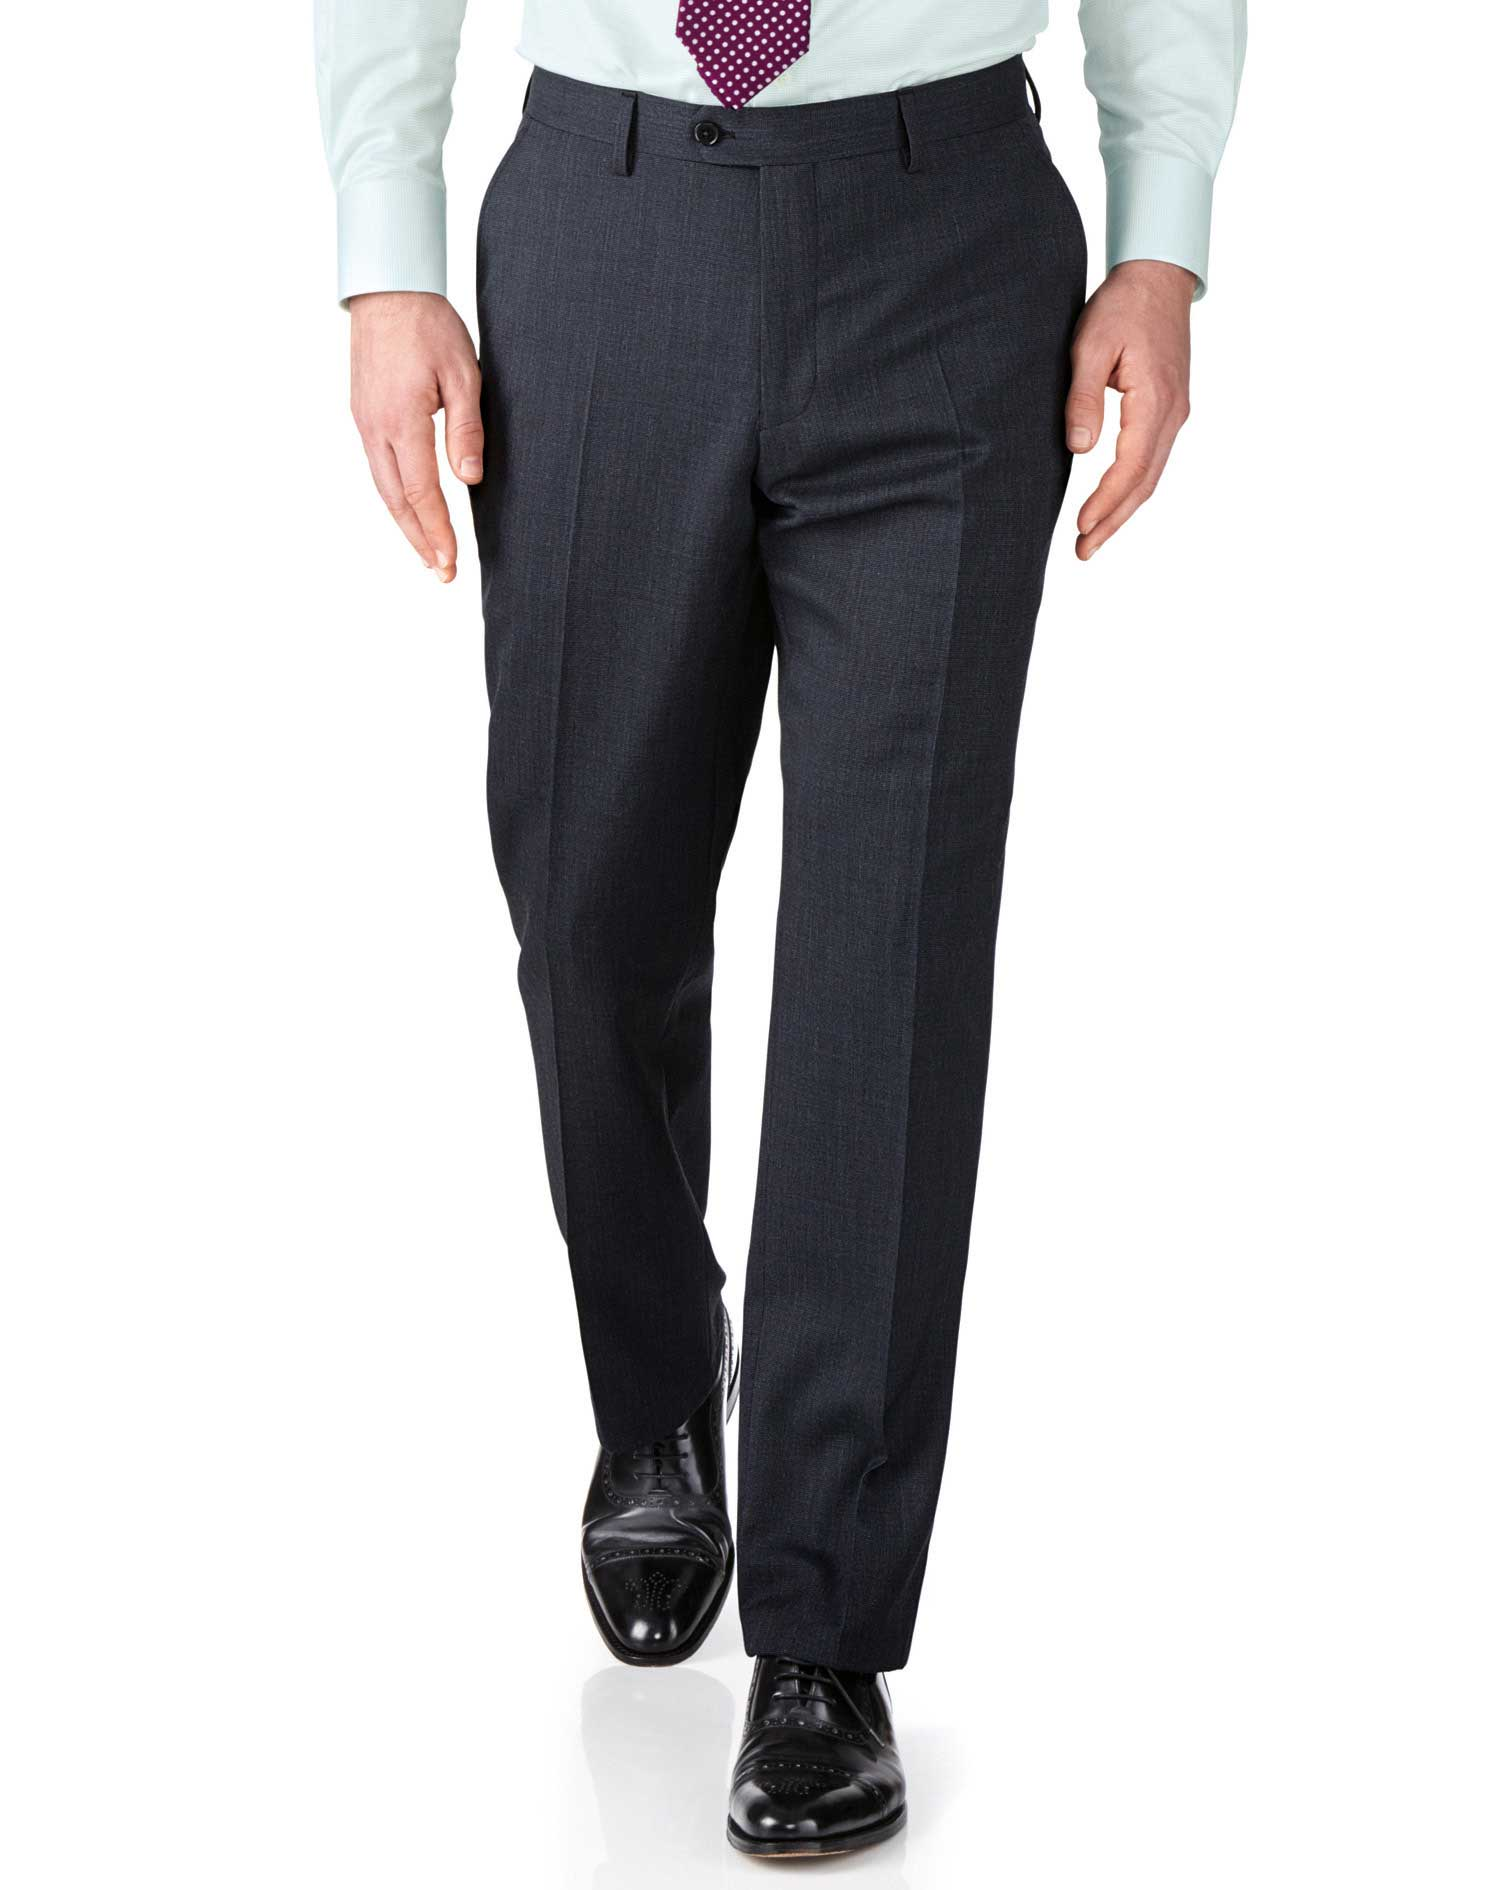 Navy Slim Fit End-On-End Business Suit Trousers Size W42 L38 by Charles Tyrwhitt